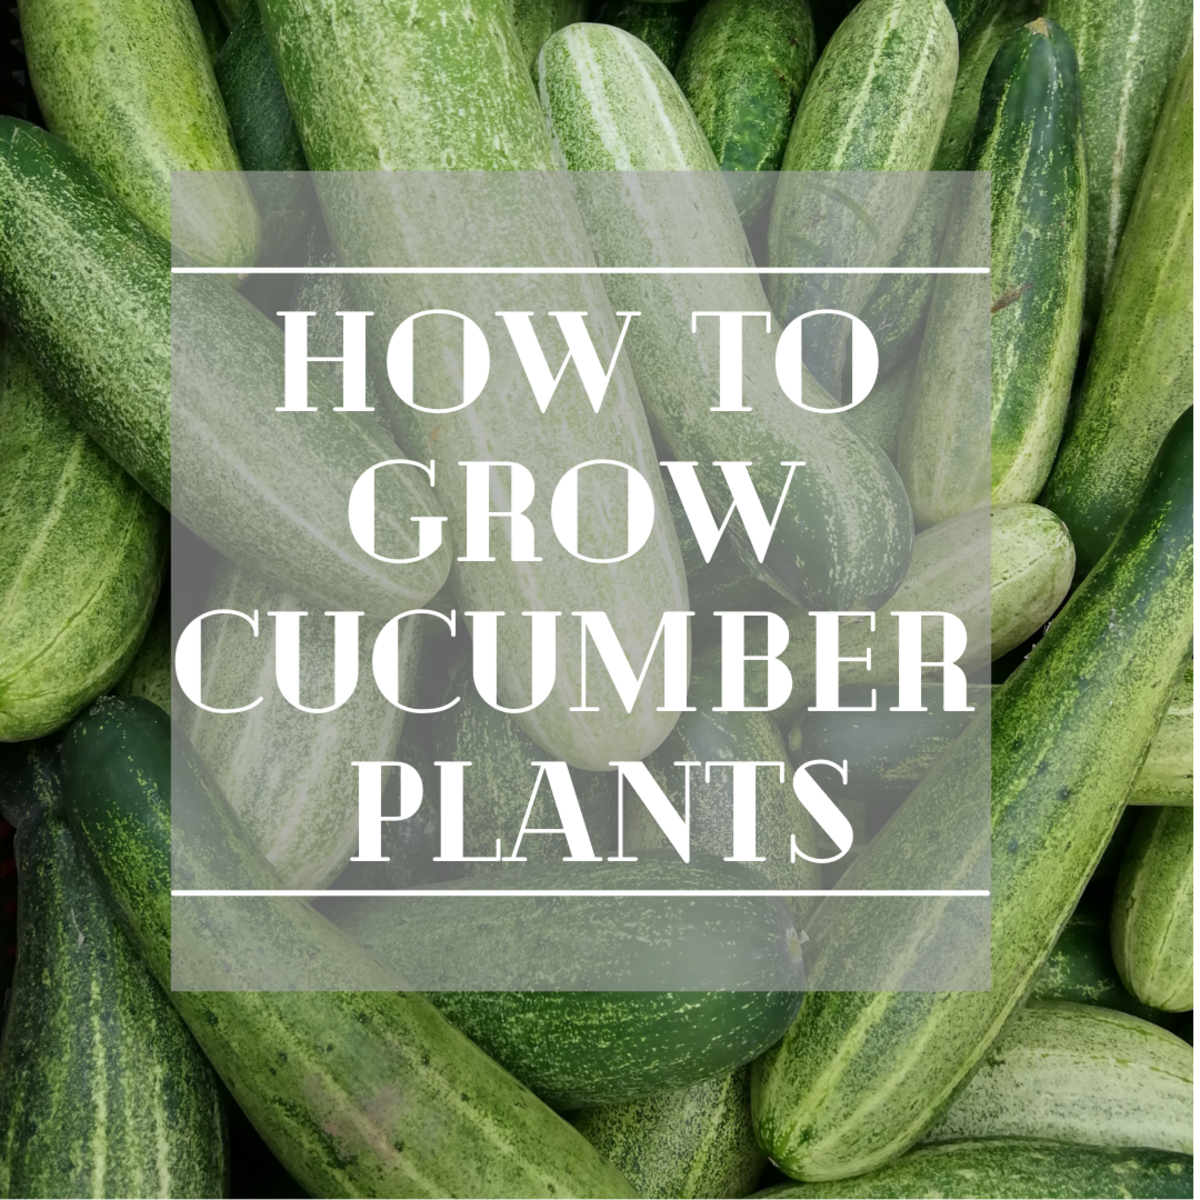 How to Grow Cucumber Plants